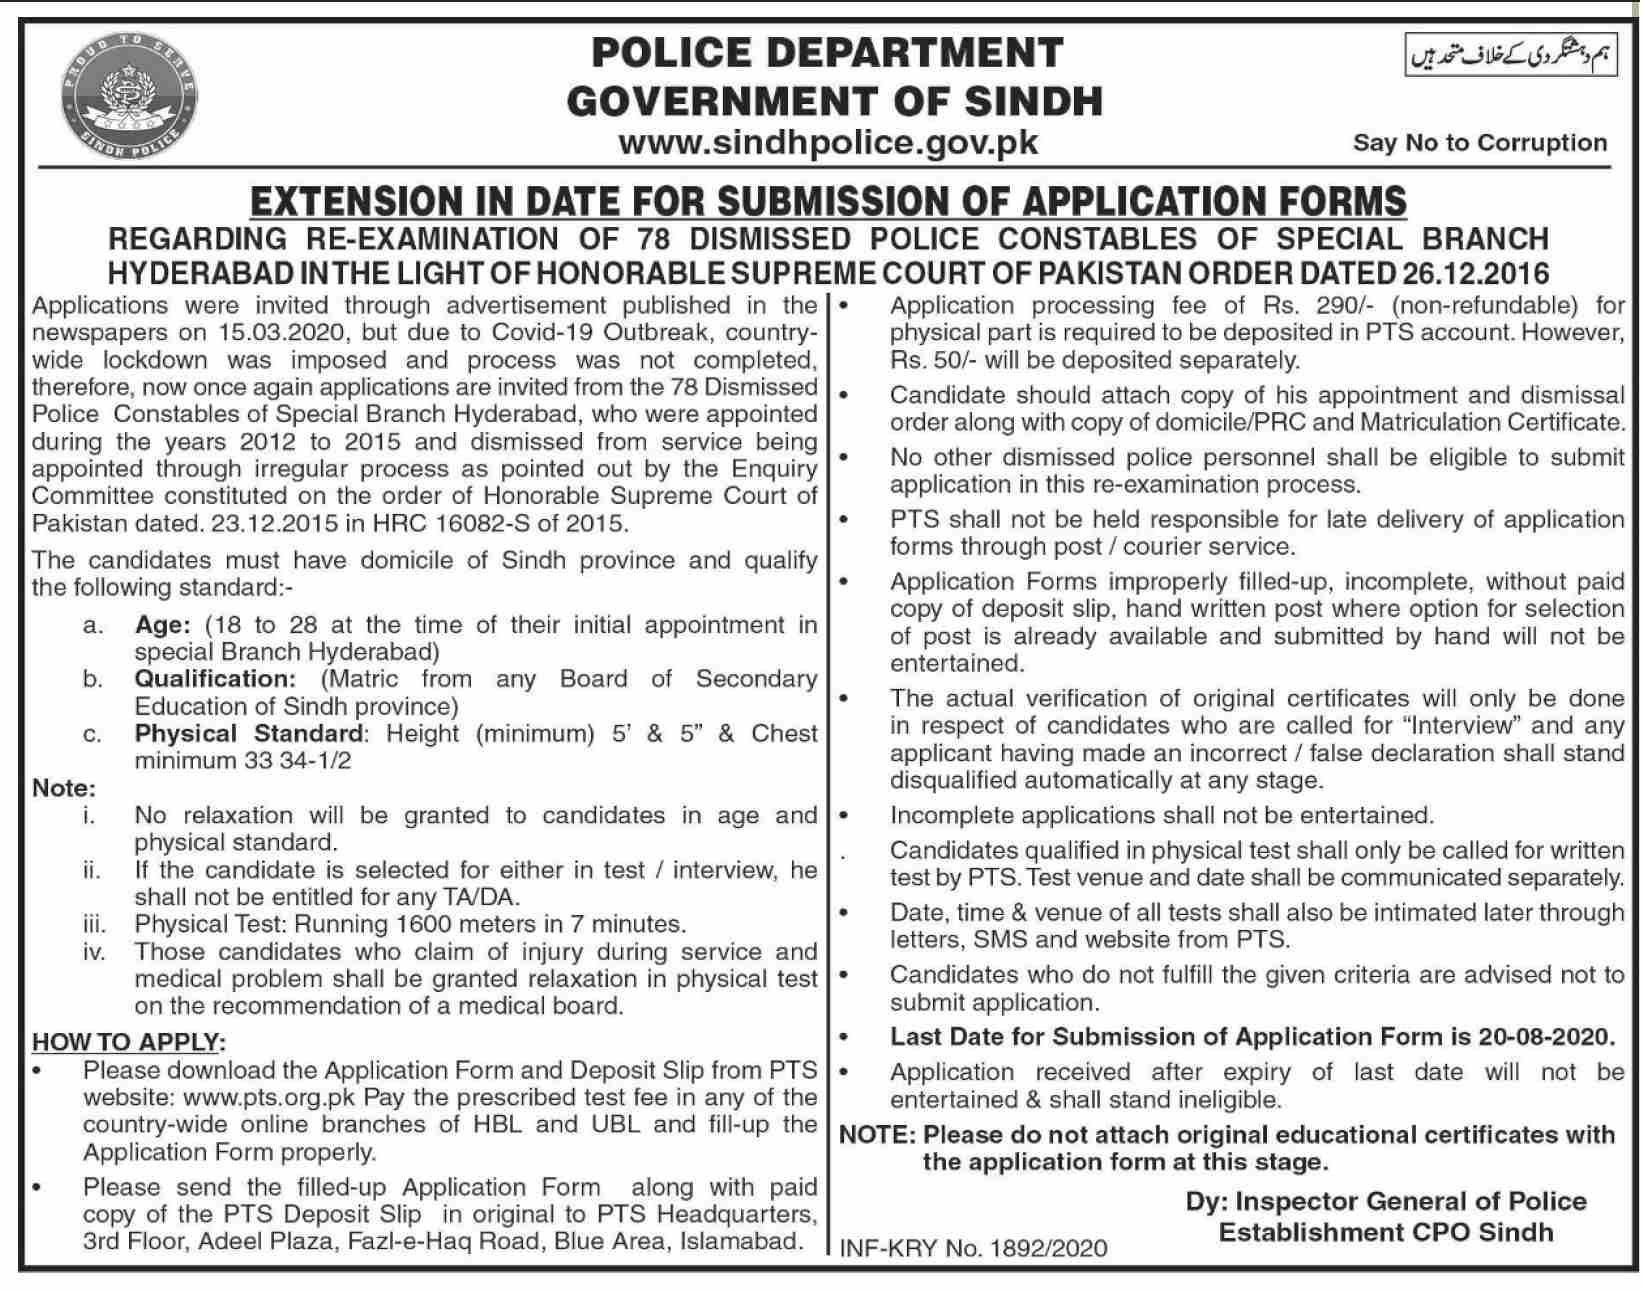 Police Department Government of Sindh Jobs July 2020